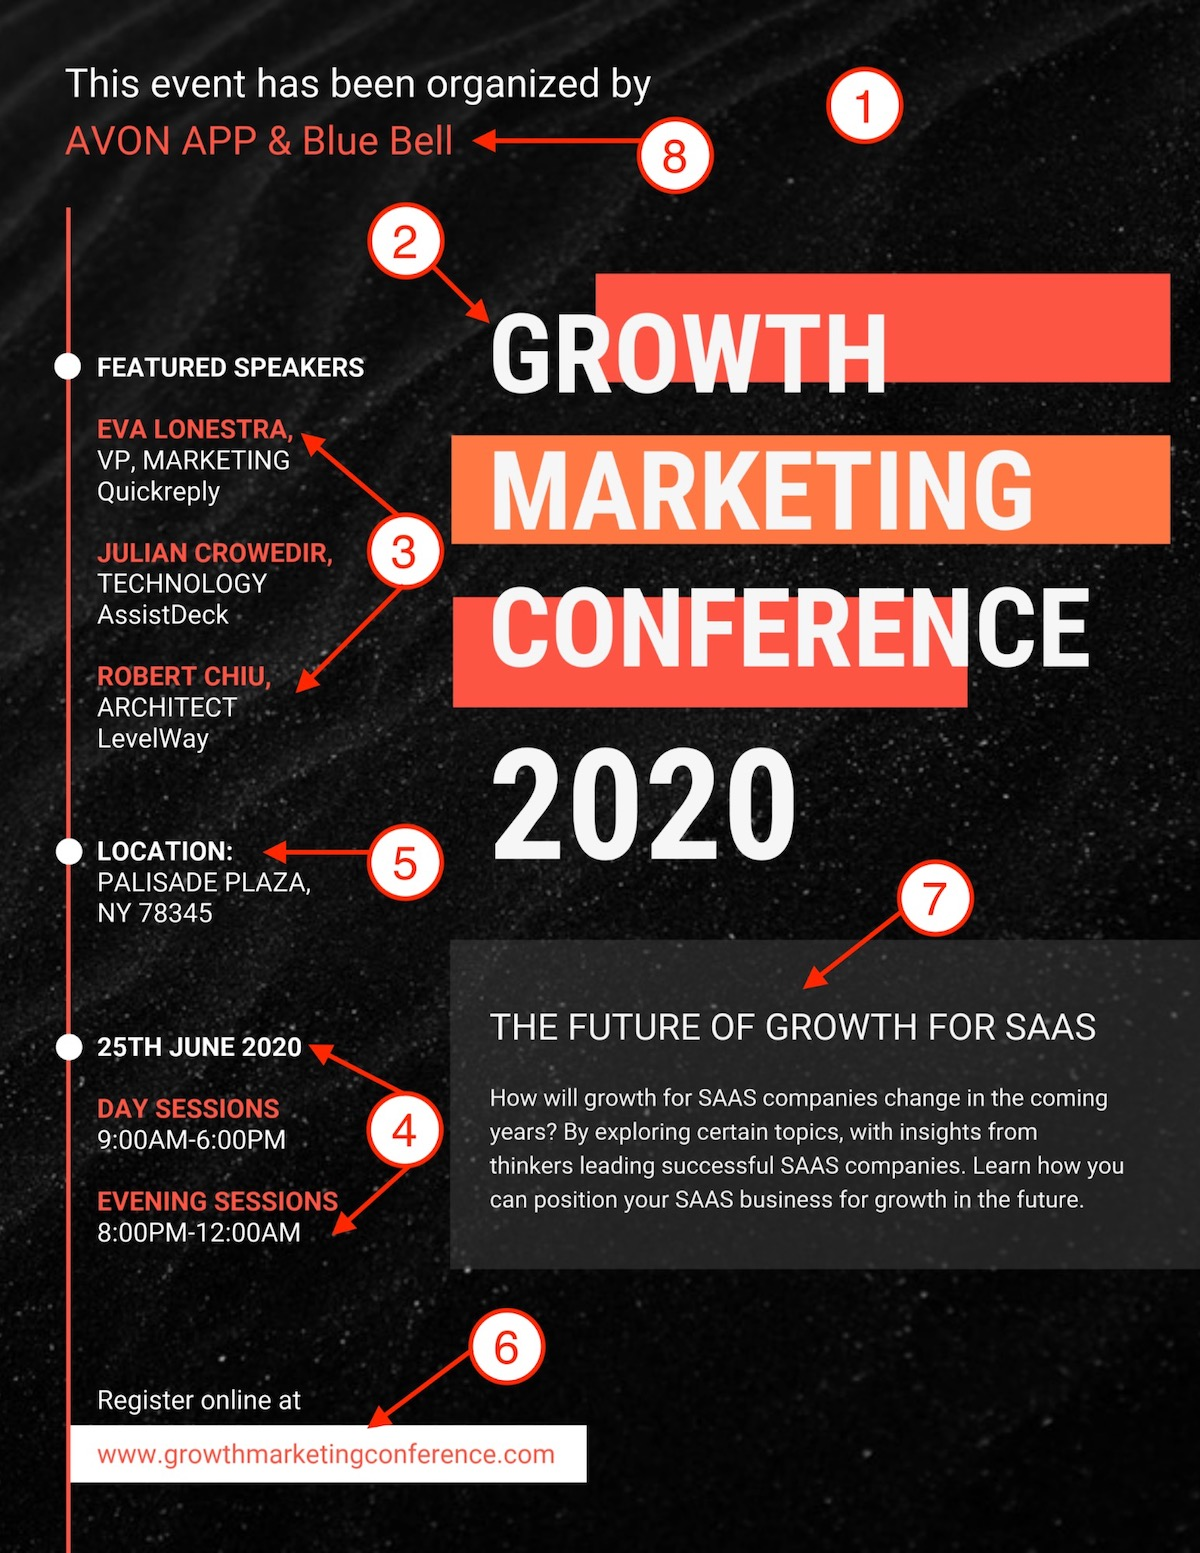 Bold Growth MarketingConference Event Poster Template